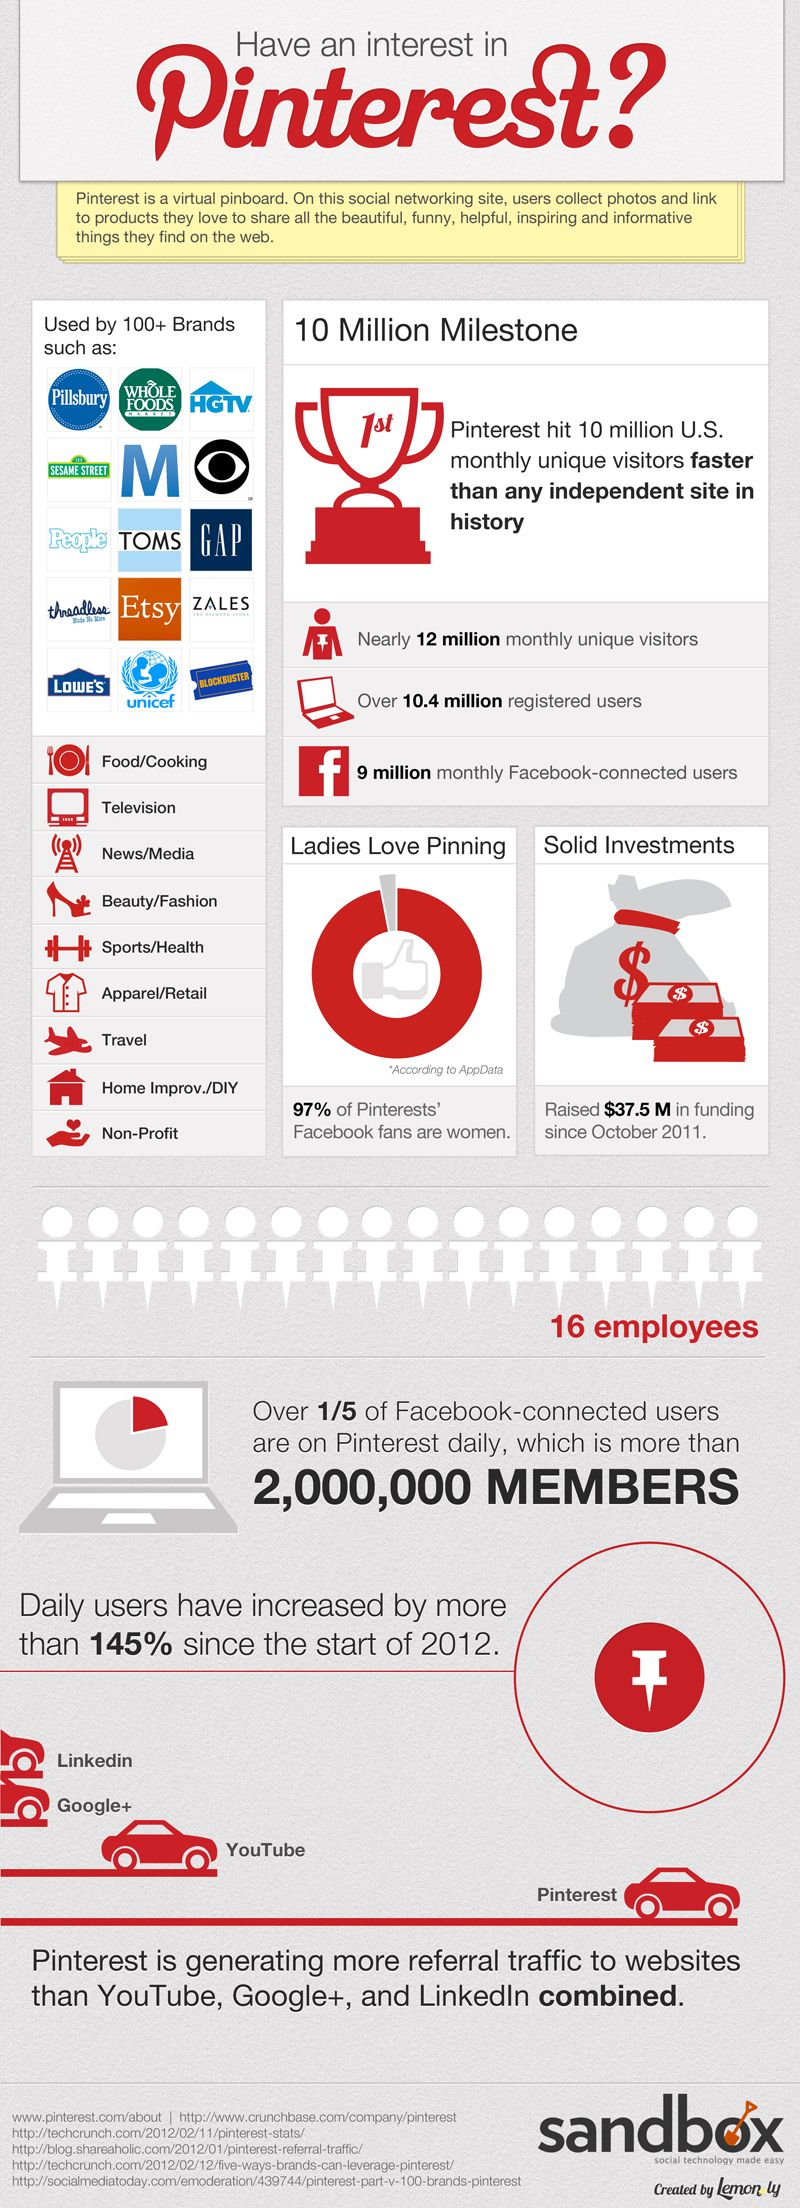 Have an interest in Pinterest? [Infographic]